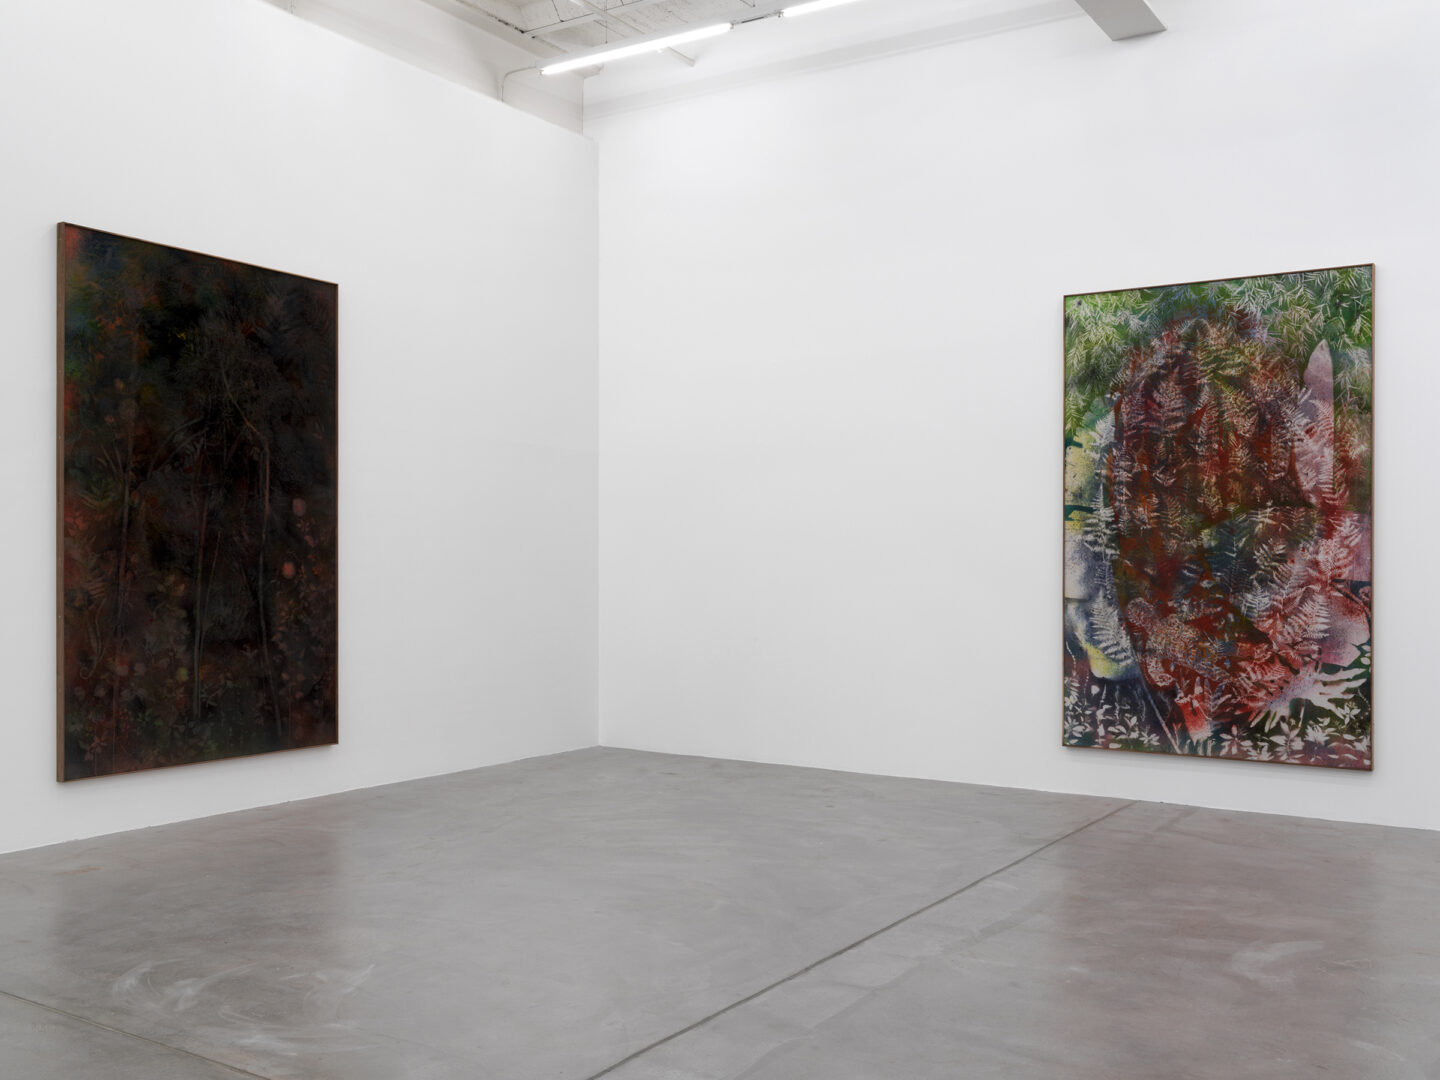 Exhibition View Sam Falls Soloshow at Galerie Eva Presenhuber, Zurich, 2019 / Photo: Stefan Altenburger / © Sam Falls / Courtesy the artist and Galerie Eva Presenhuber, Zurich / New York